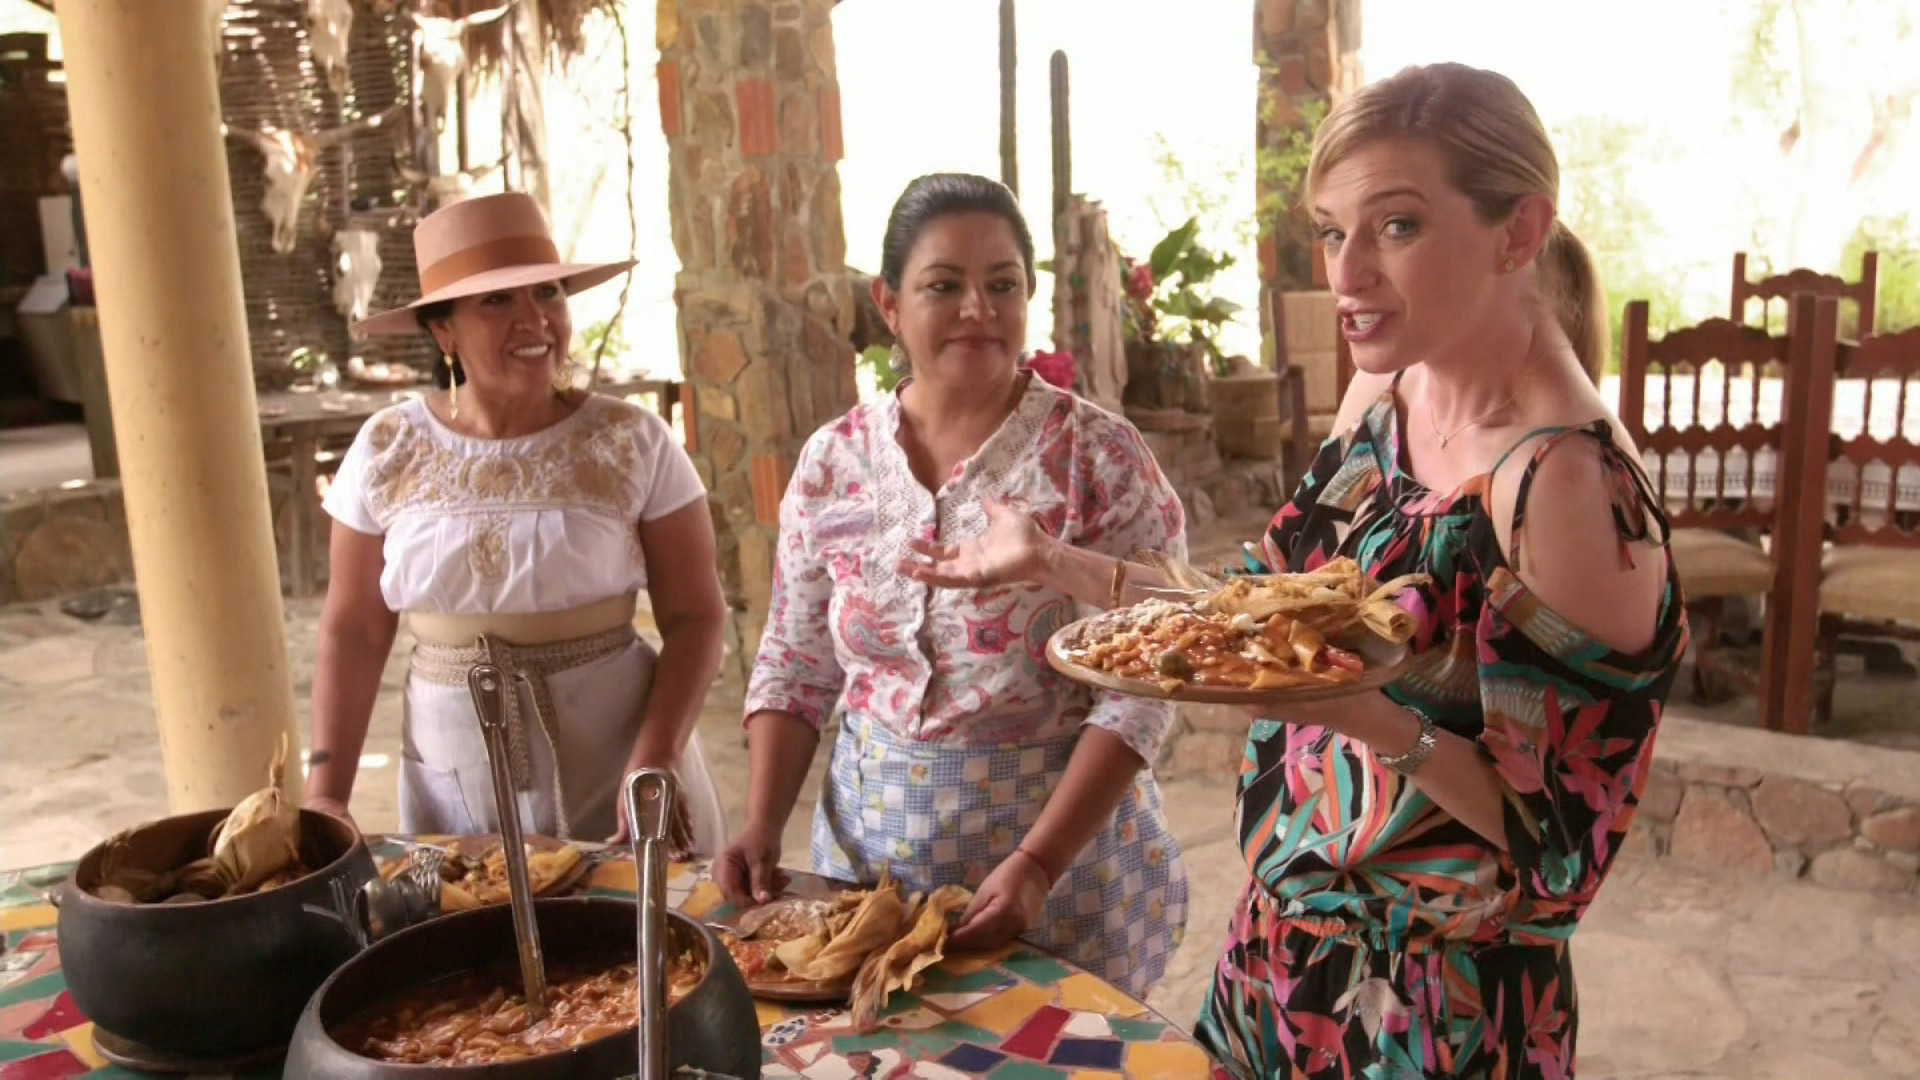 S7 E9: The Godmother of Cabo Cuisine